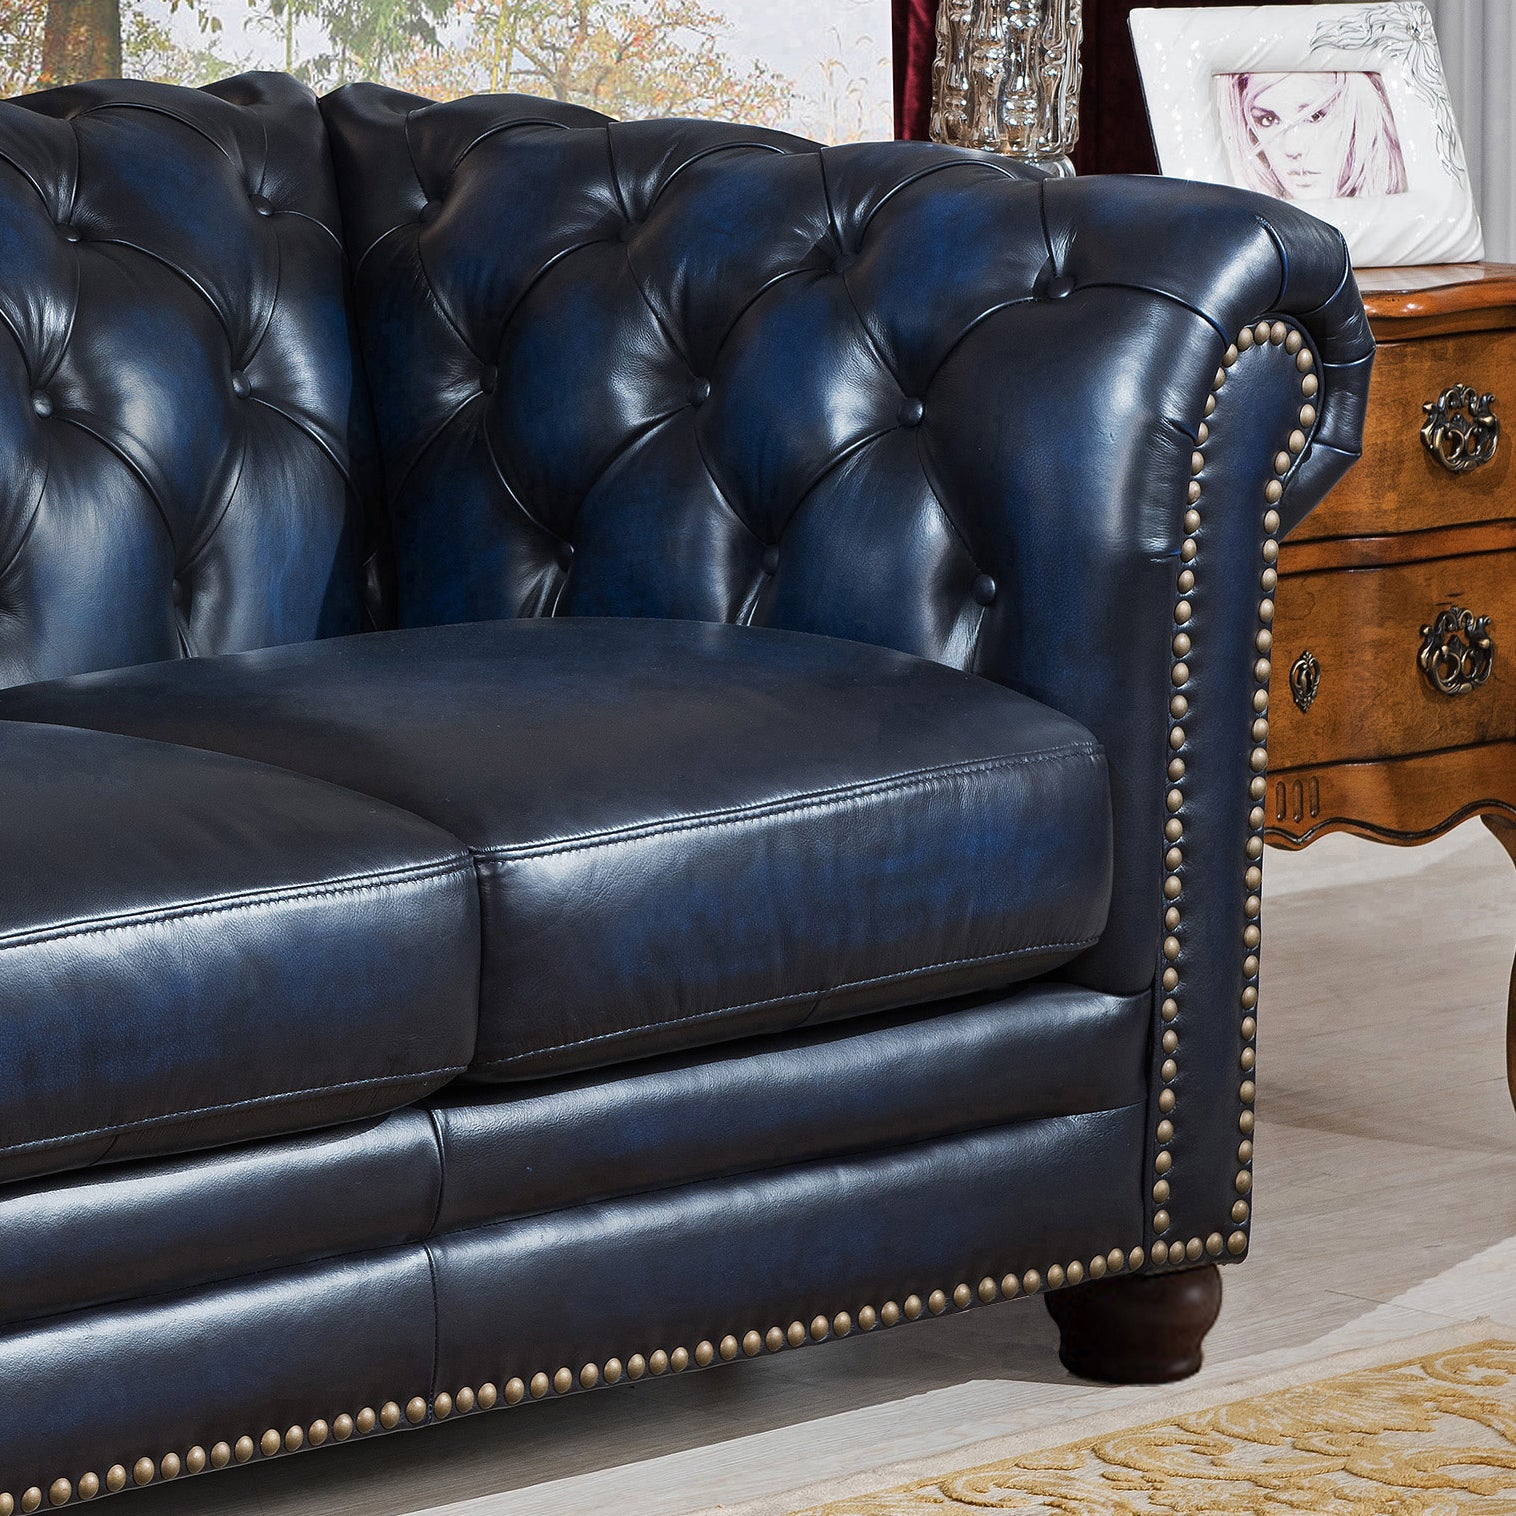 Nebraska Genuine Hand Rubbed Blue Leather Chesterfield Sofa And Two Chair Set Free Shipping Today 12143397